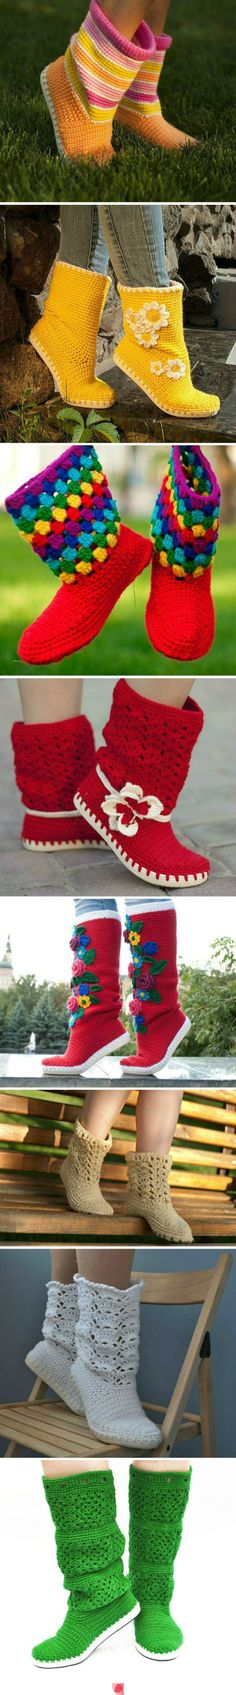 ADORABLE crocheted boots!